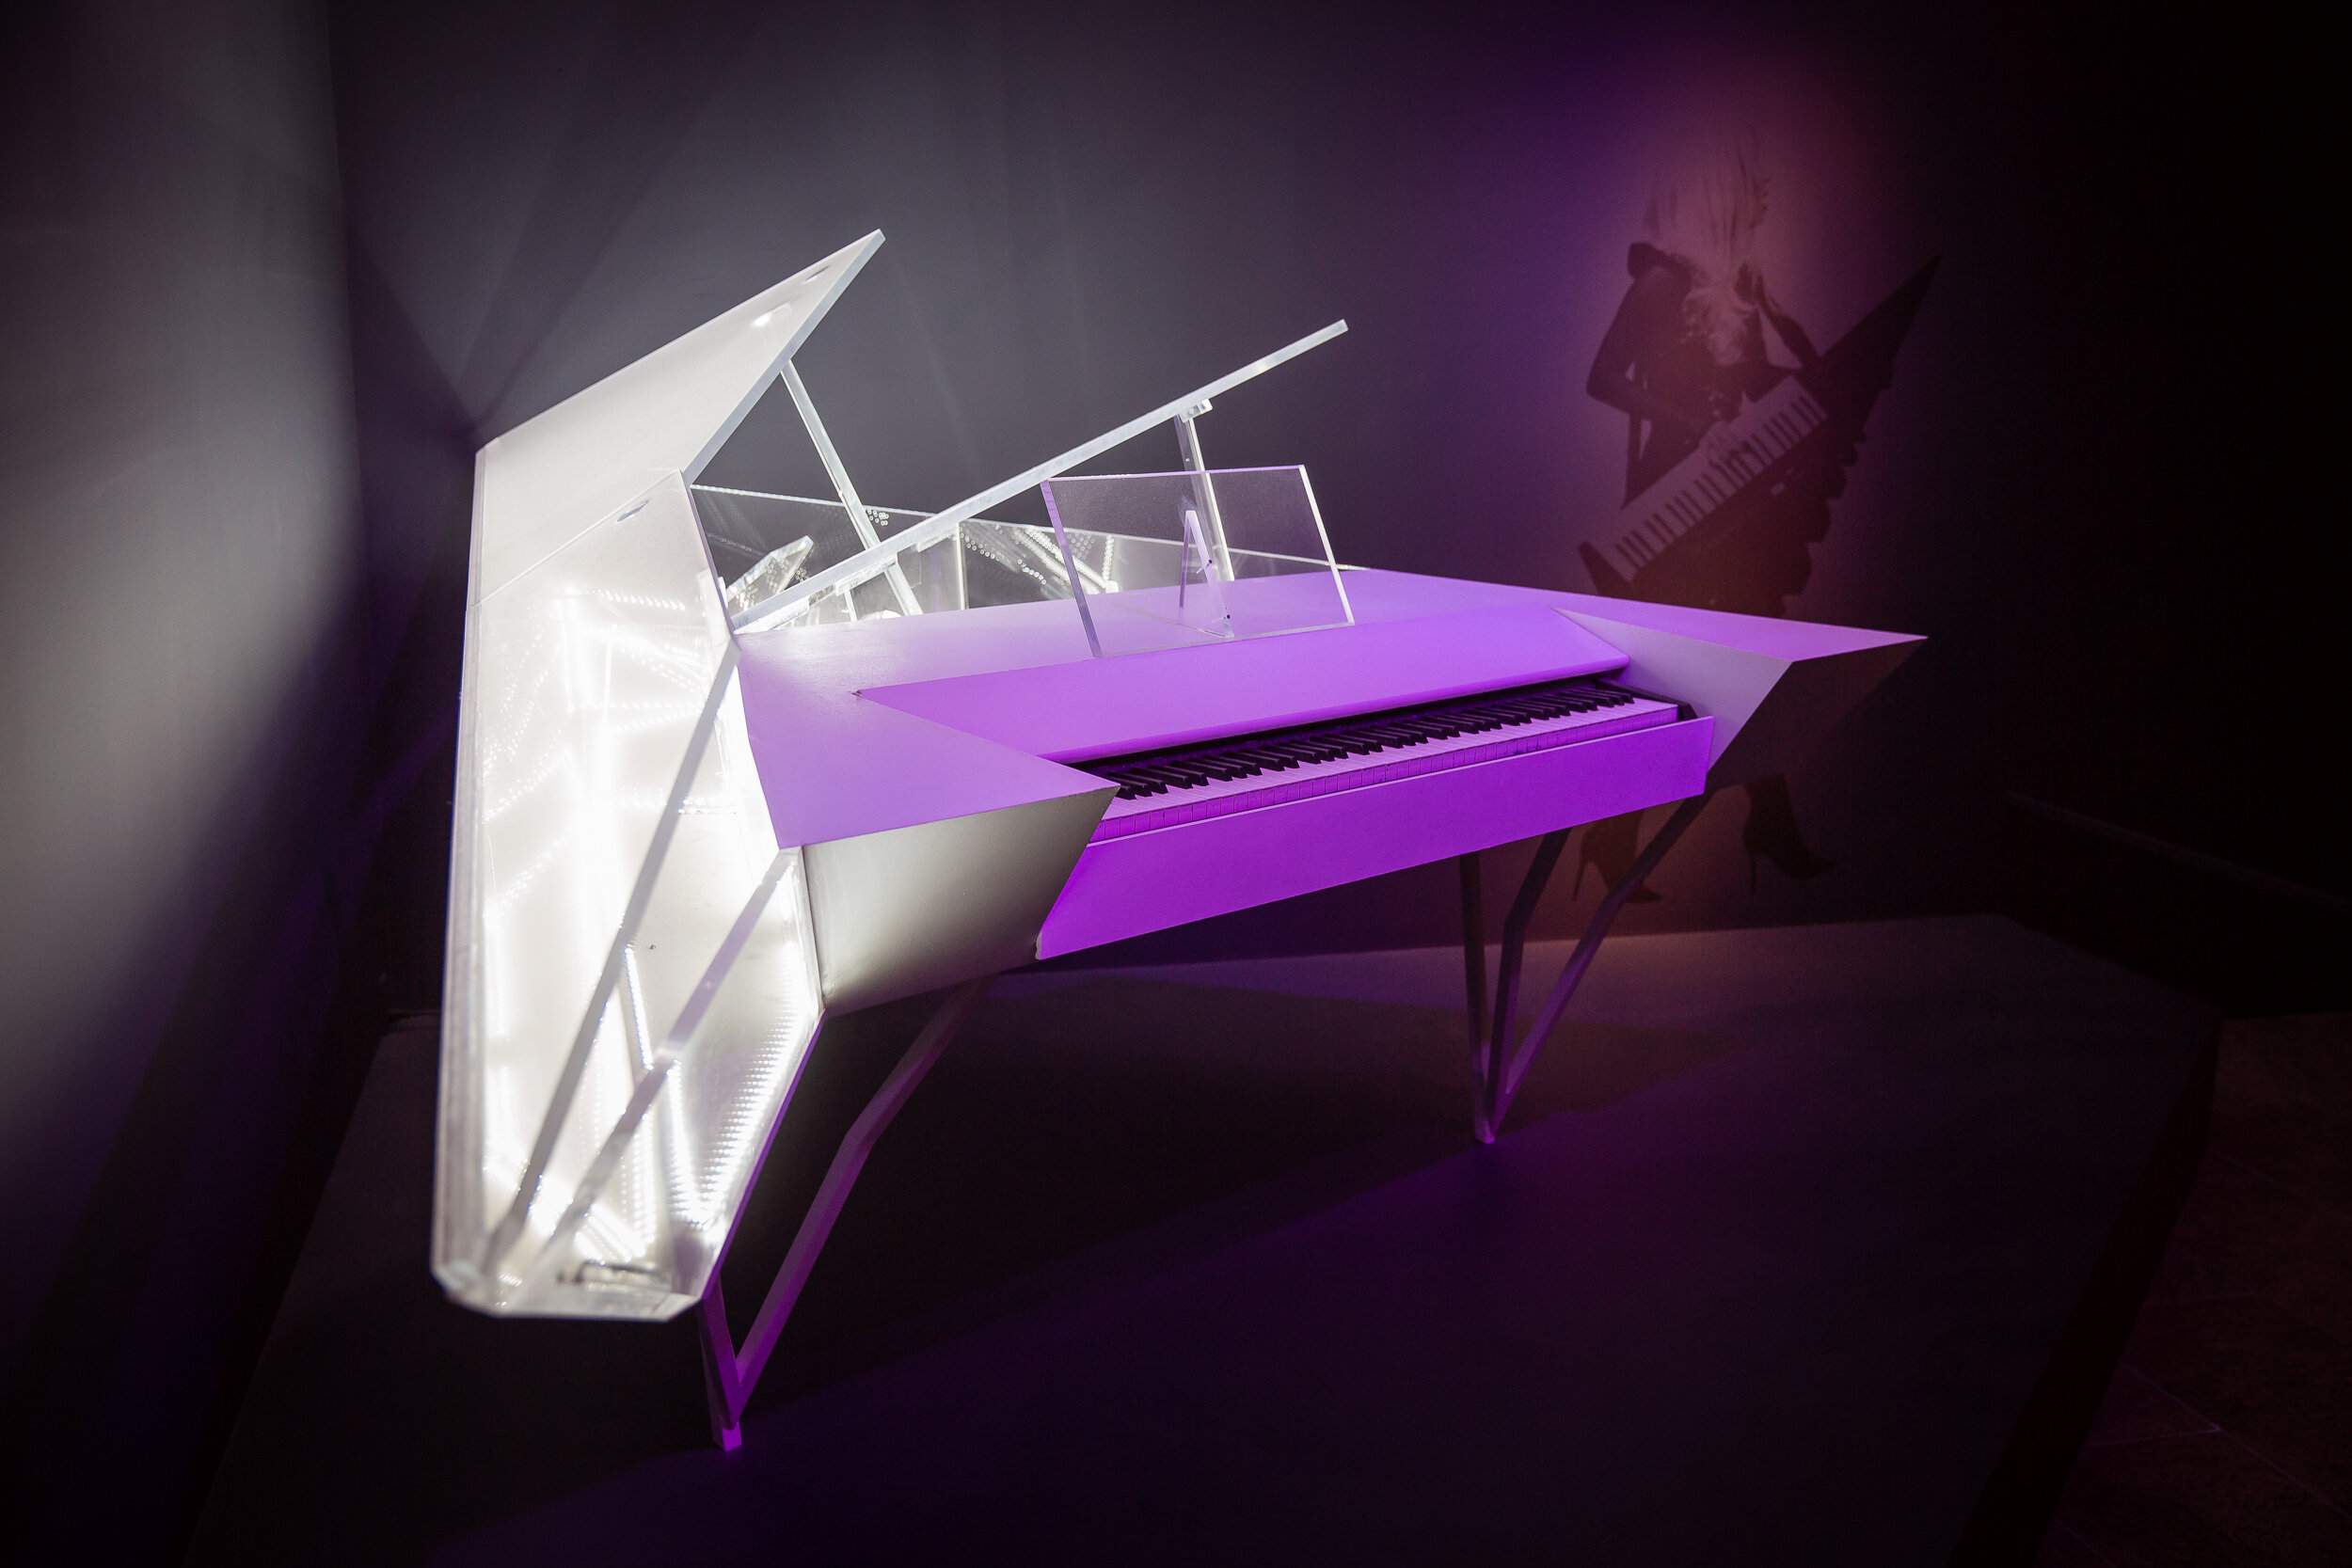 Lady Gaga's piano at The Metropolitan Museum of Art